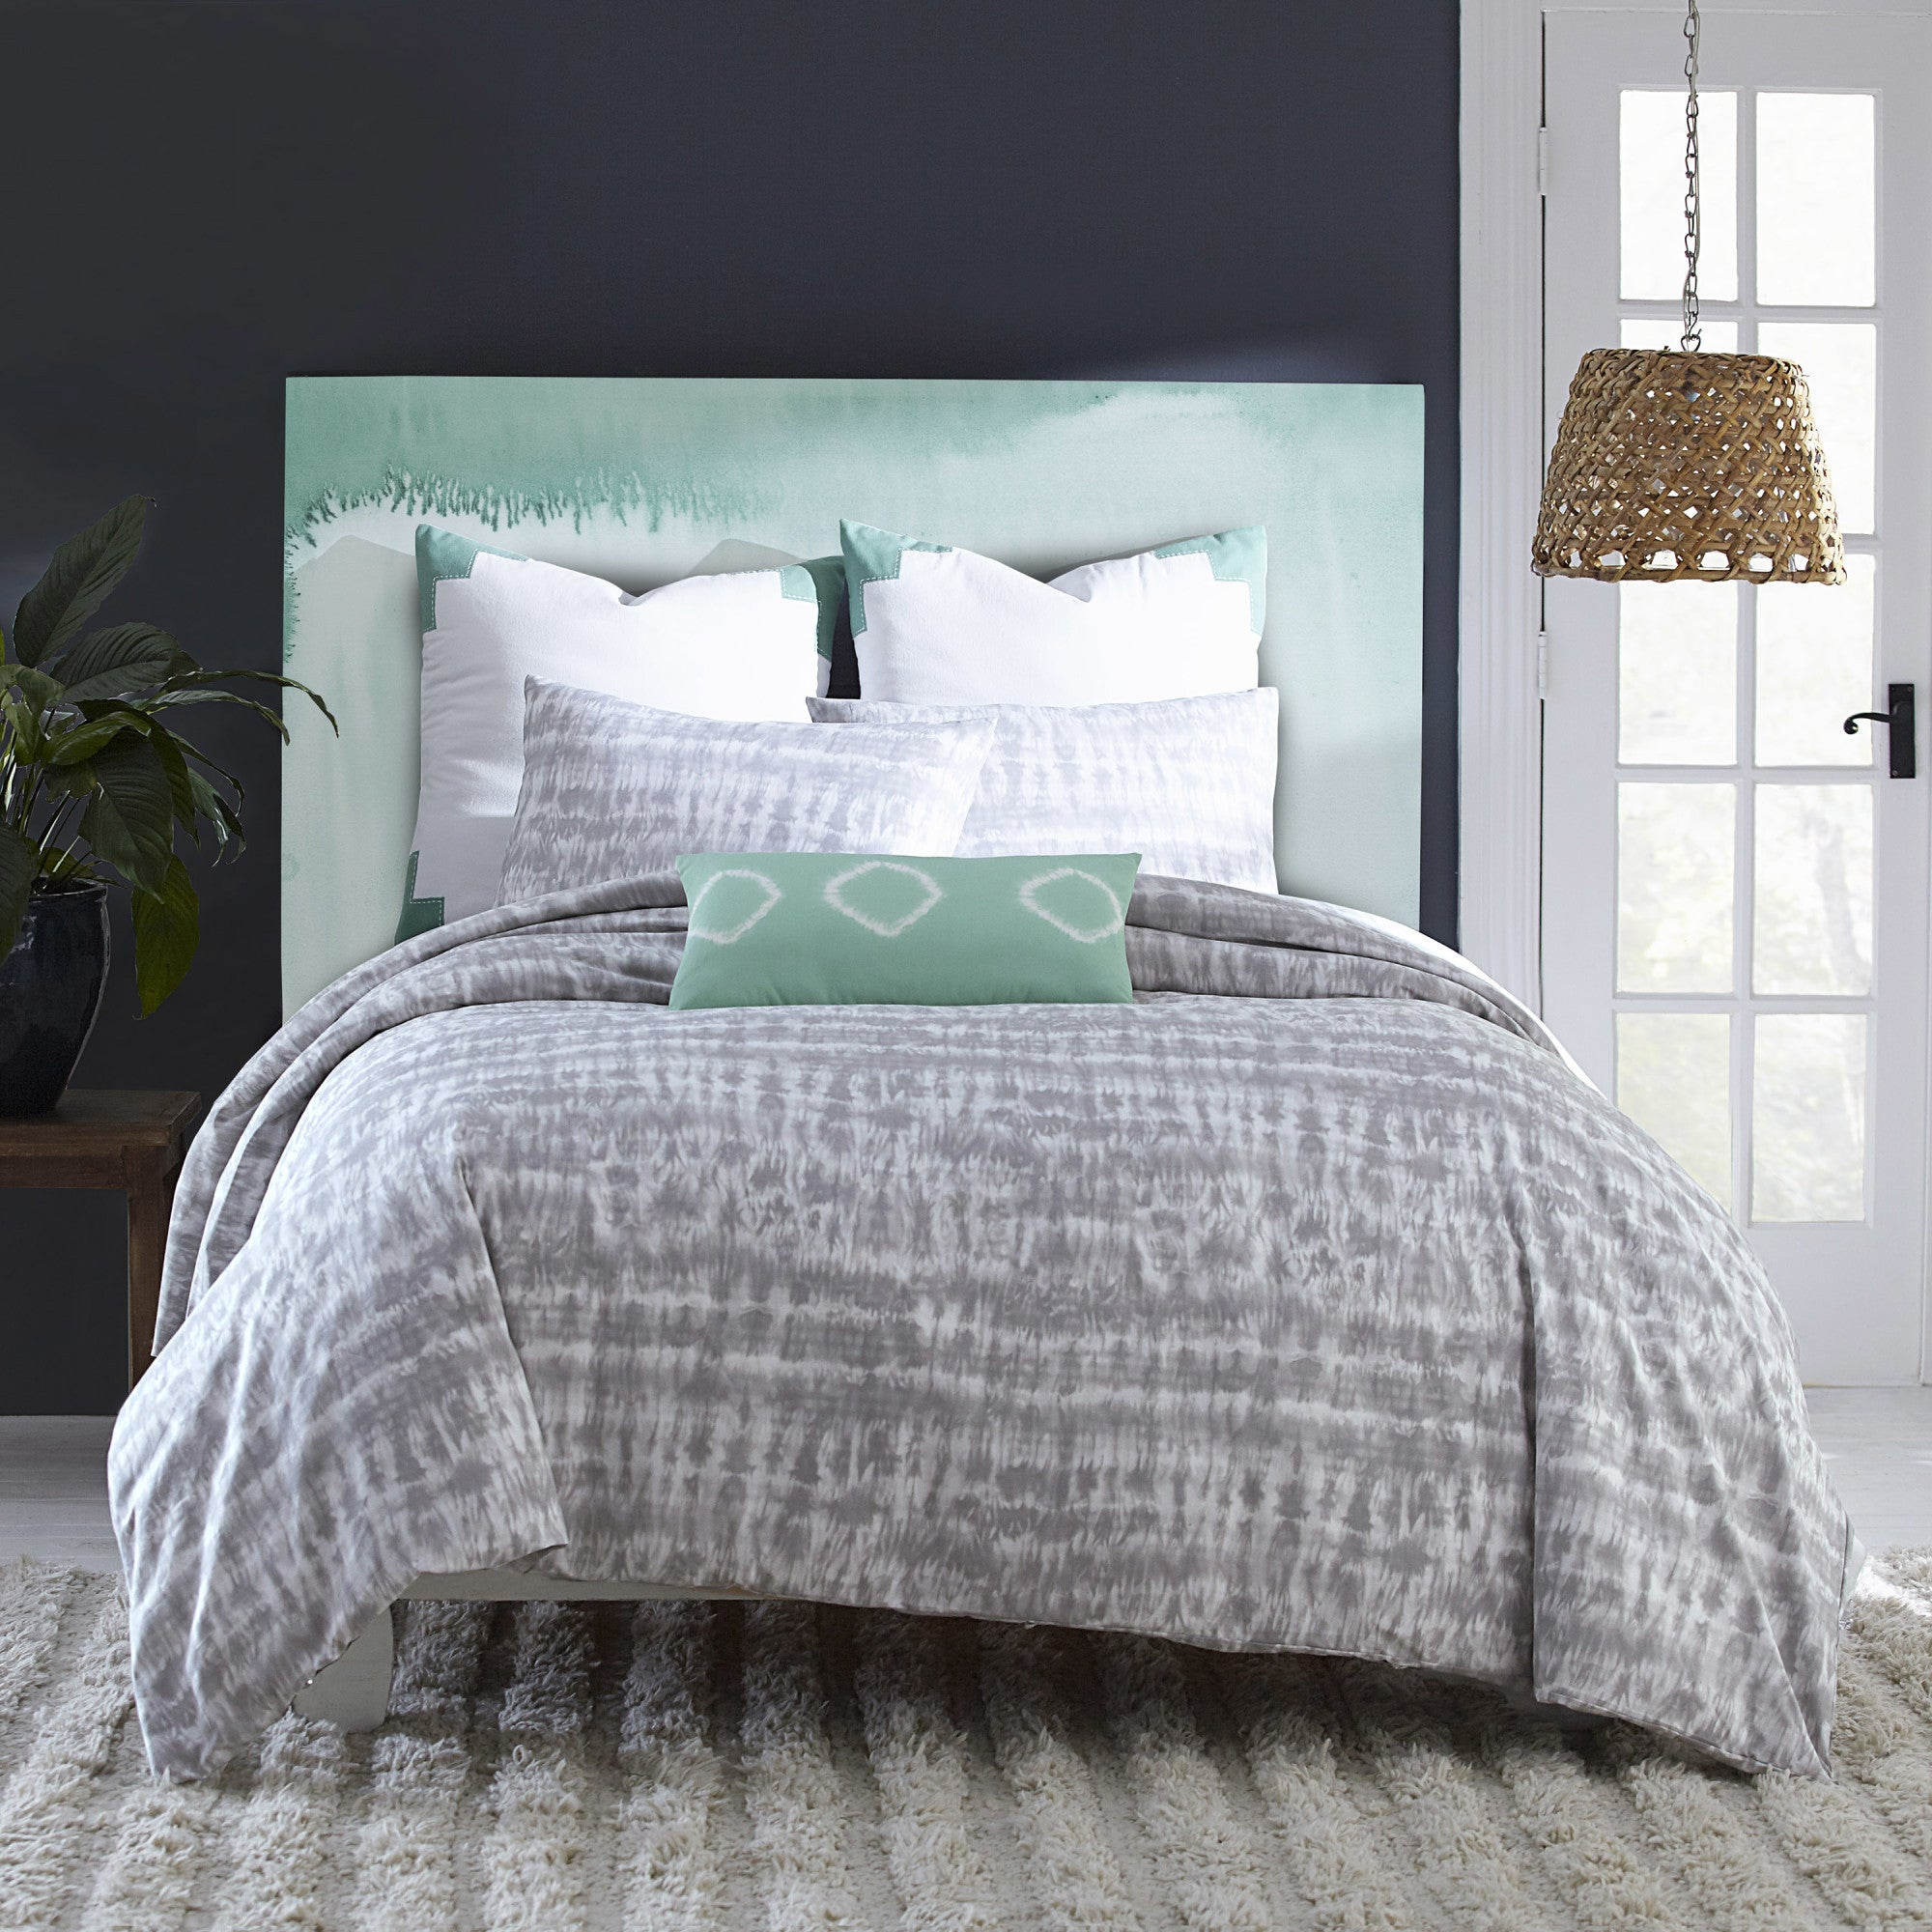 twin quilt queen size full gray park amazing palais nz and duvet light covers patterned bedding print white crawford black pictures dorma cotton stupendous grey teal madison single xl doona sets modern duvets piece comforter cover king of chevron dark set